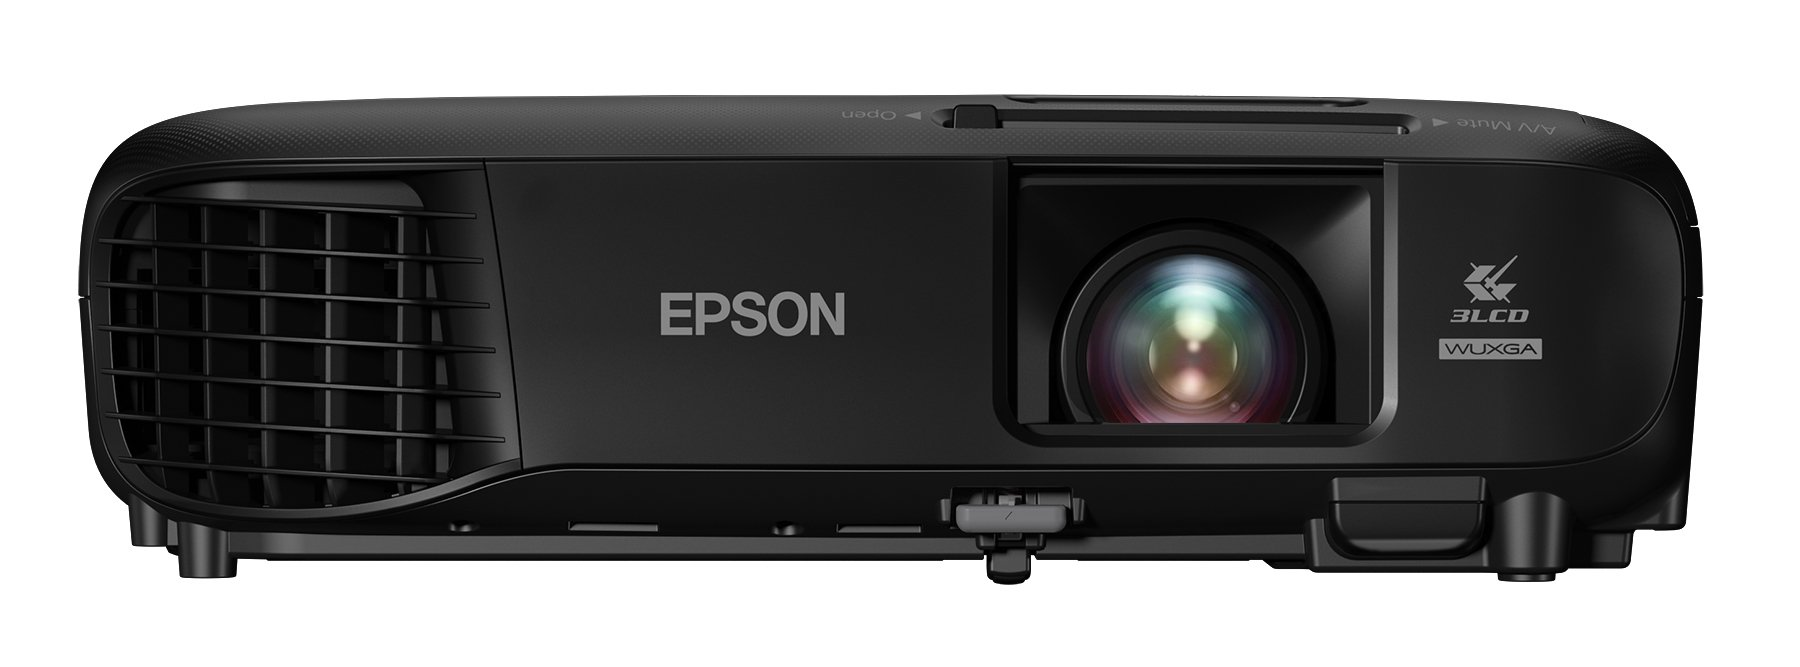 Epson Pro EX9220 1080p+ WUXGA 3,600 lumens color brightness (color light output) 3,600 lumens white brightness (white light output) wireless Miracast HDMI MHL 3LCD projector by Epson (Image #2)